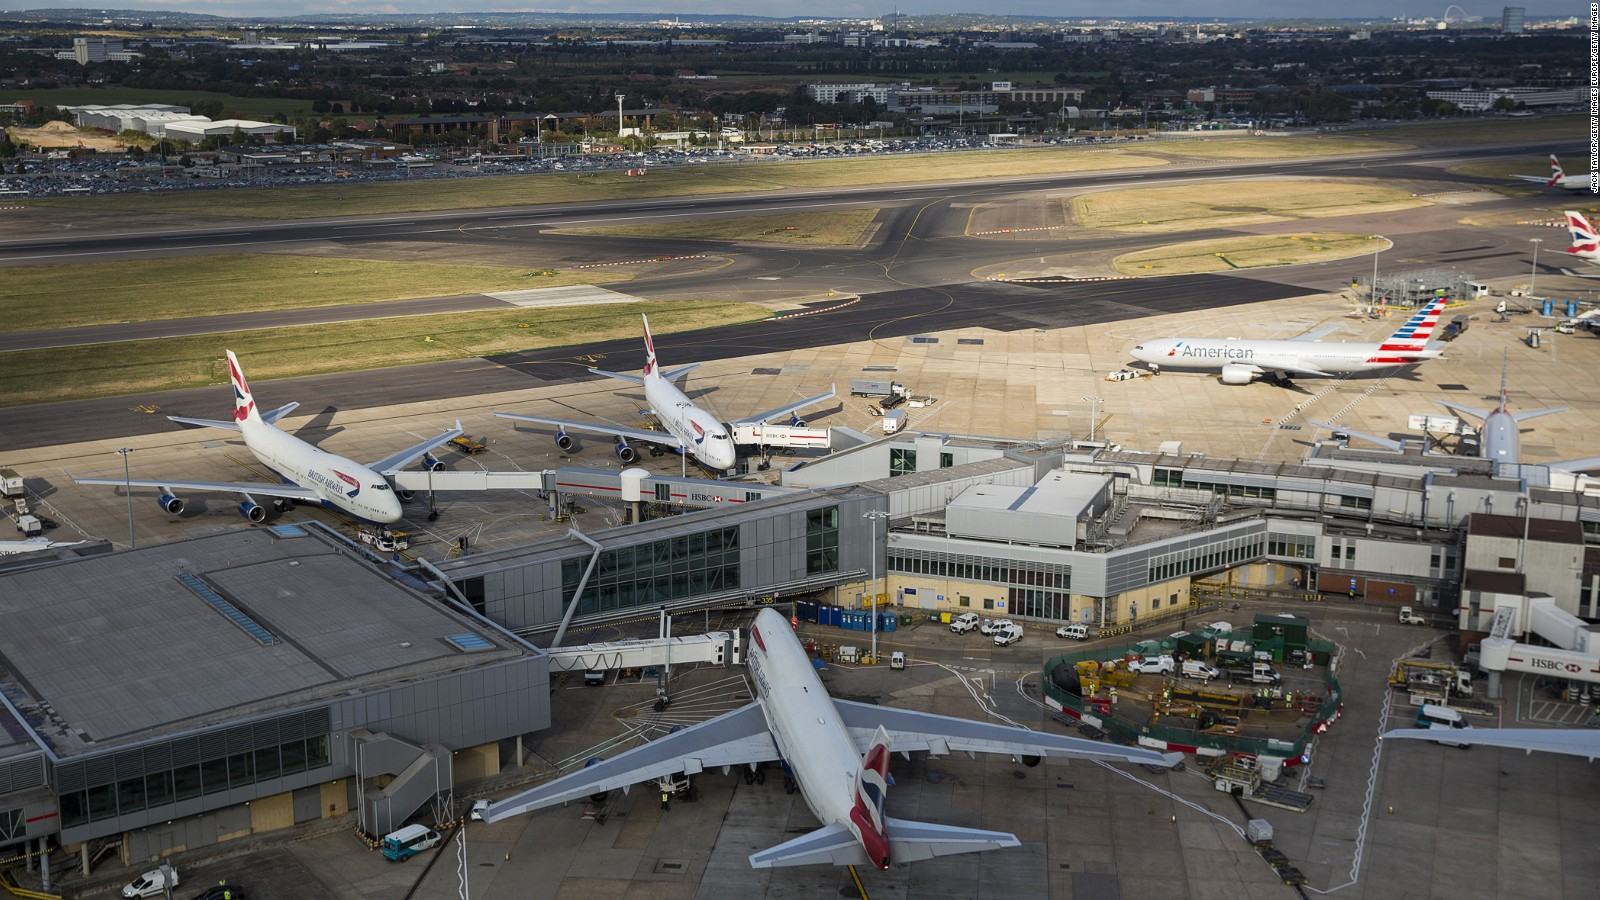 heathrow airport launches probe after usb stick with security files found cnn